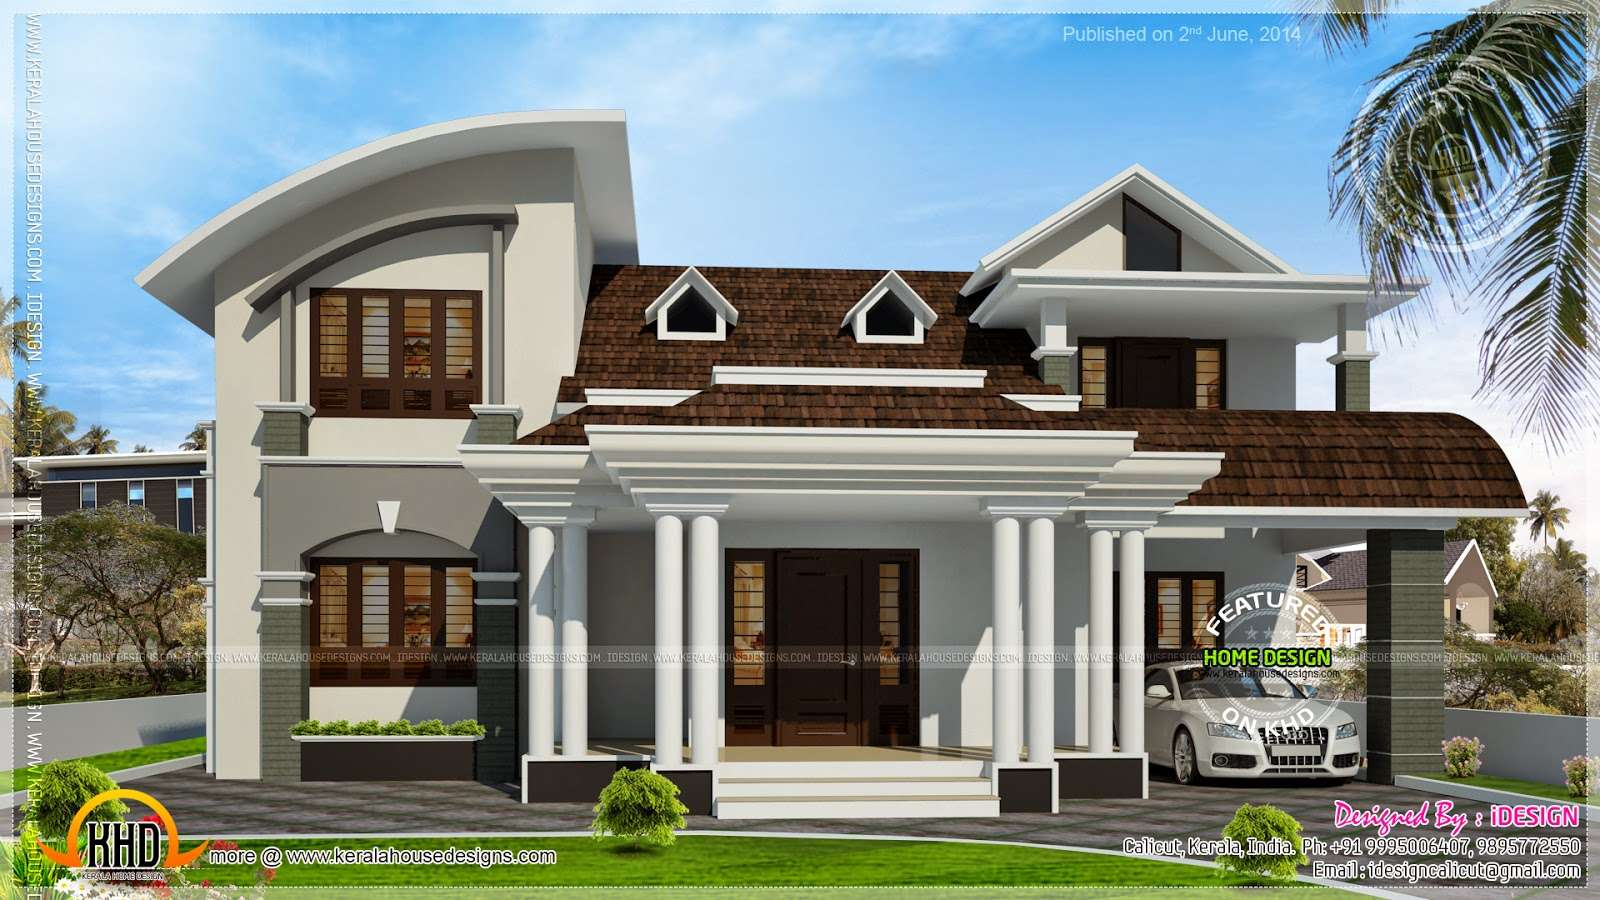 Perfect Kerala Home Design Image best home designers in kerala House Beautiful Dormer Windows Kerala Home Design Floor